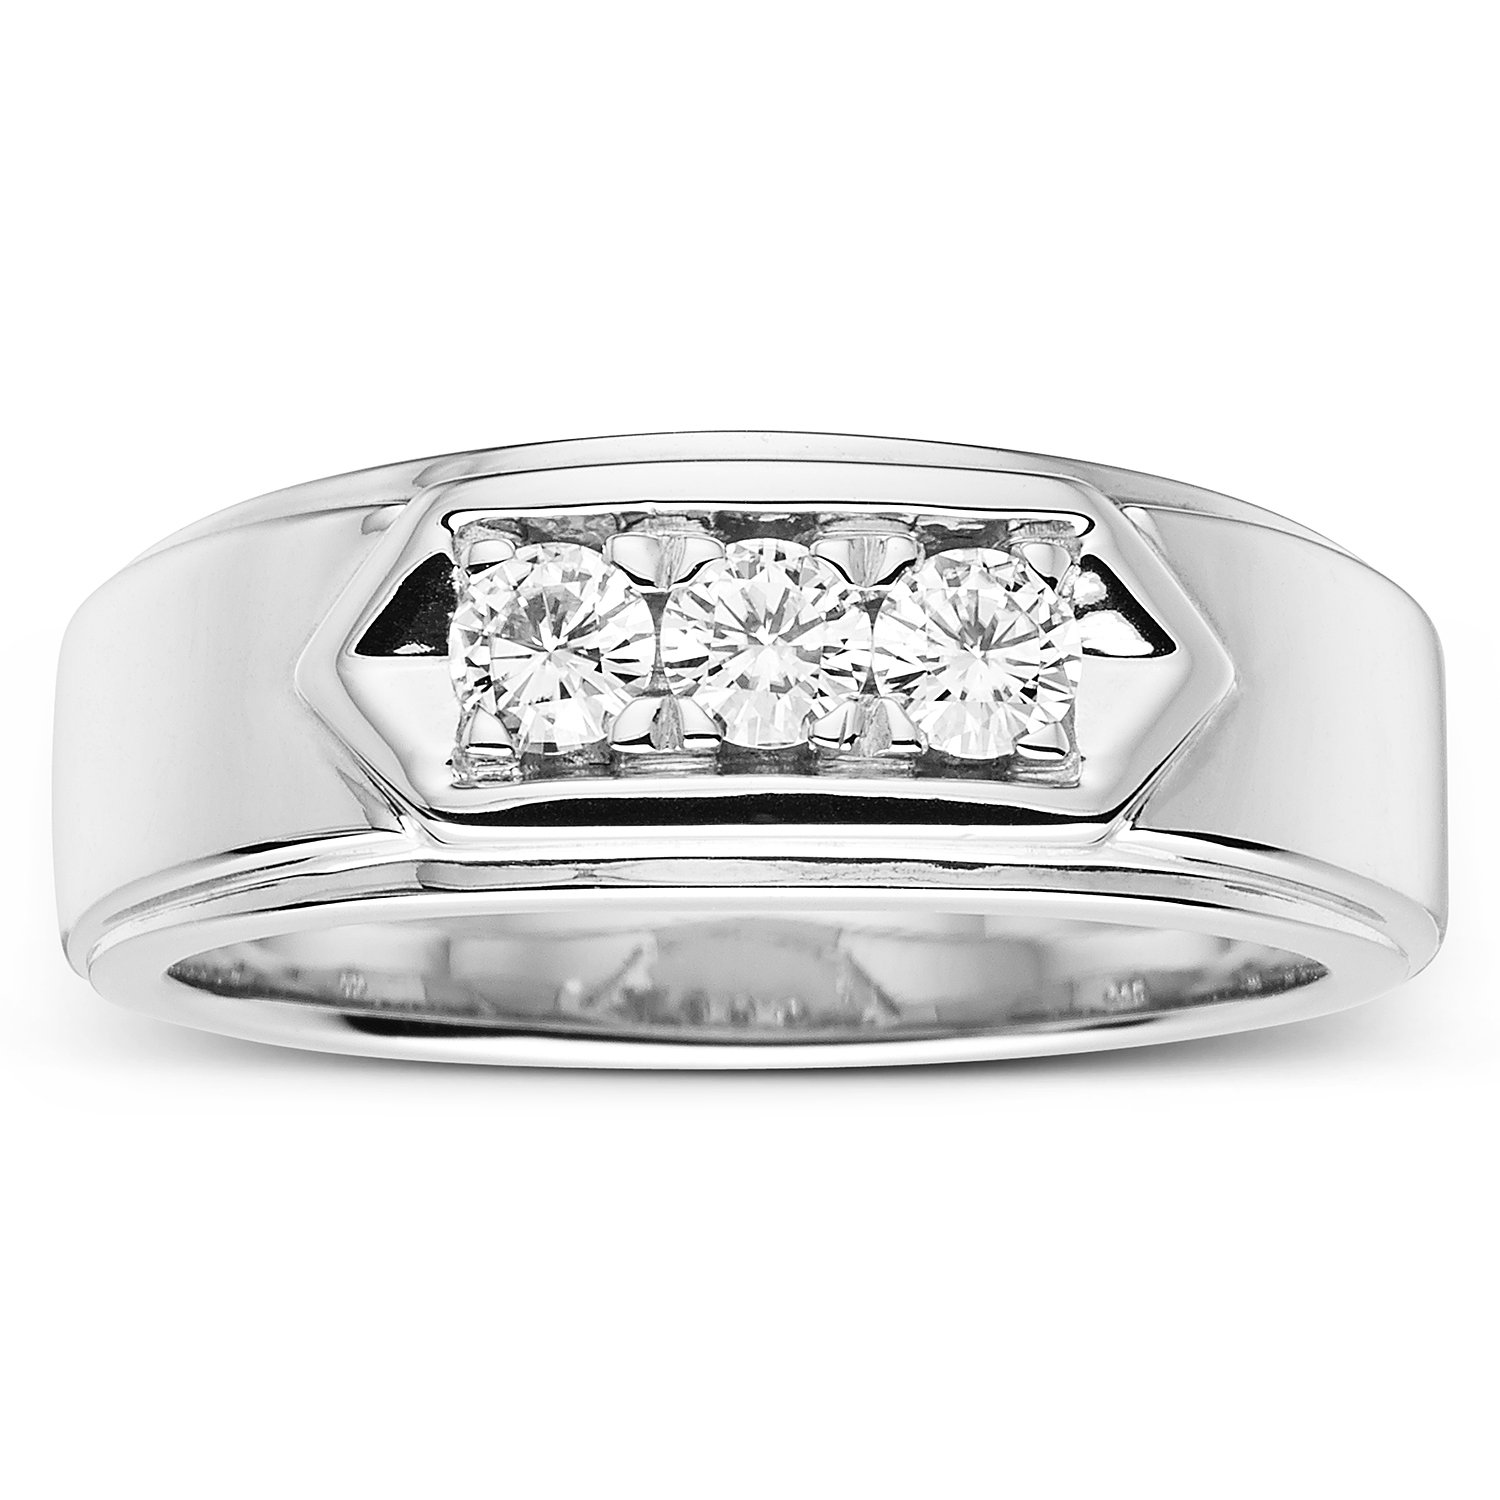 Forever Classic Mens Round 3.5mm Moissanite Wedding Band-size 10, 0.48cttw DEW By Charles & Colvard